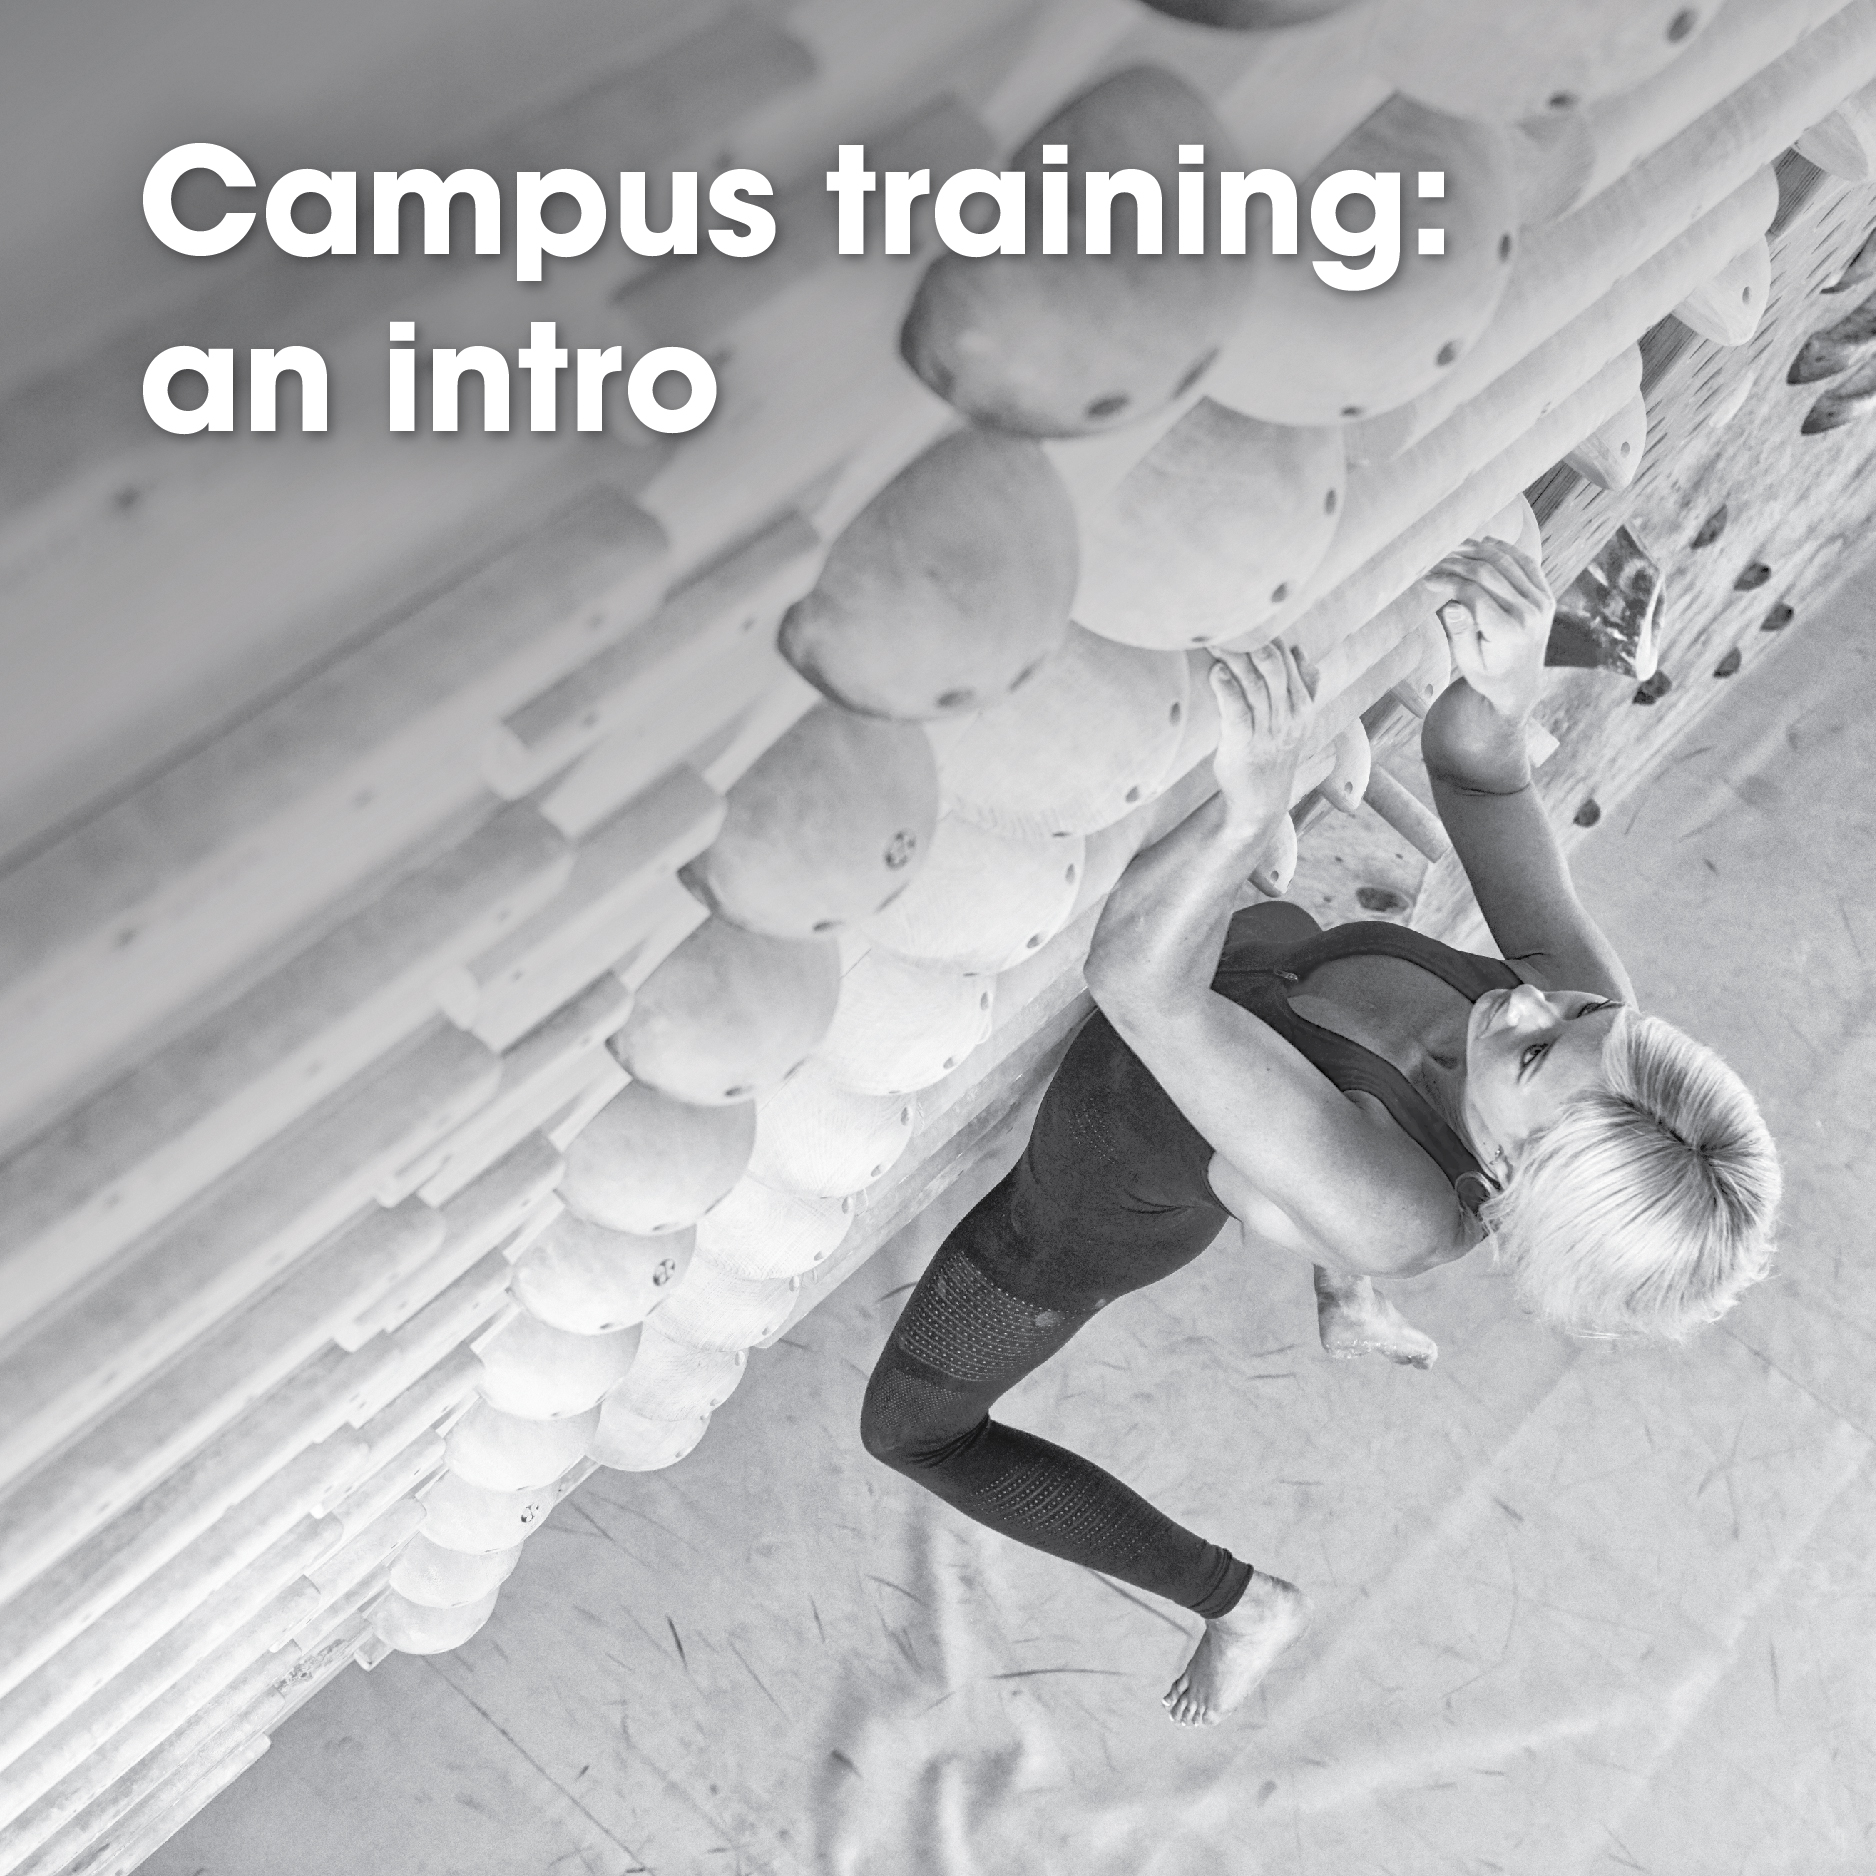 Campus training: an intro